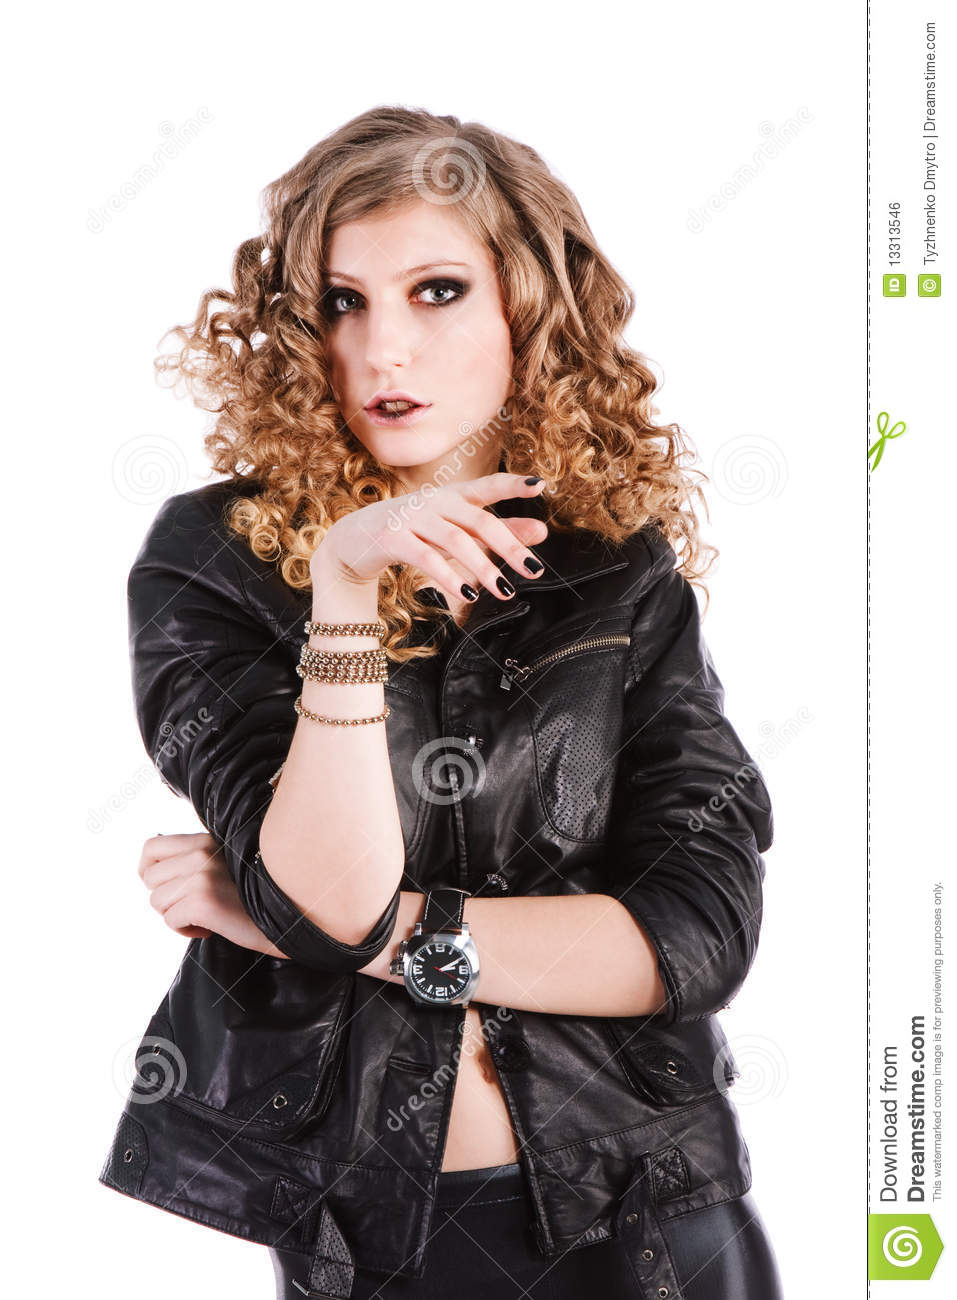 Sweet charming young girl royalty free stock image image 13313546 - Charming teenage girls image ...